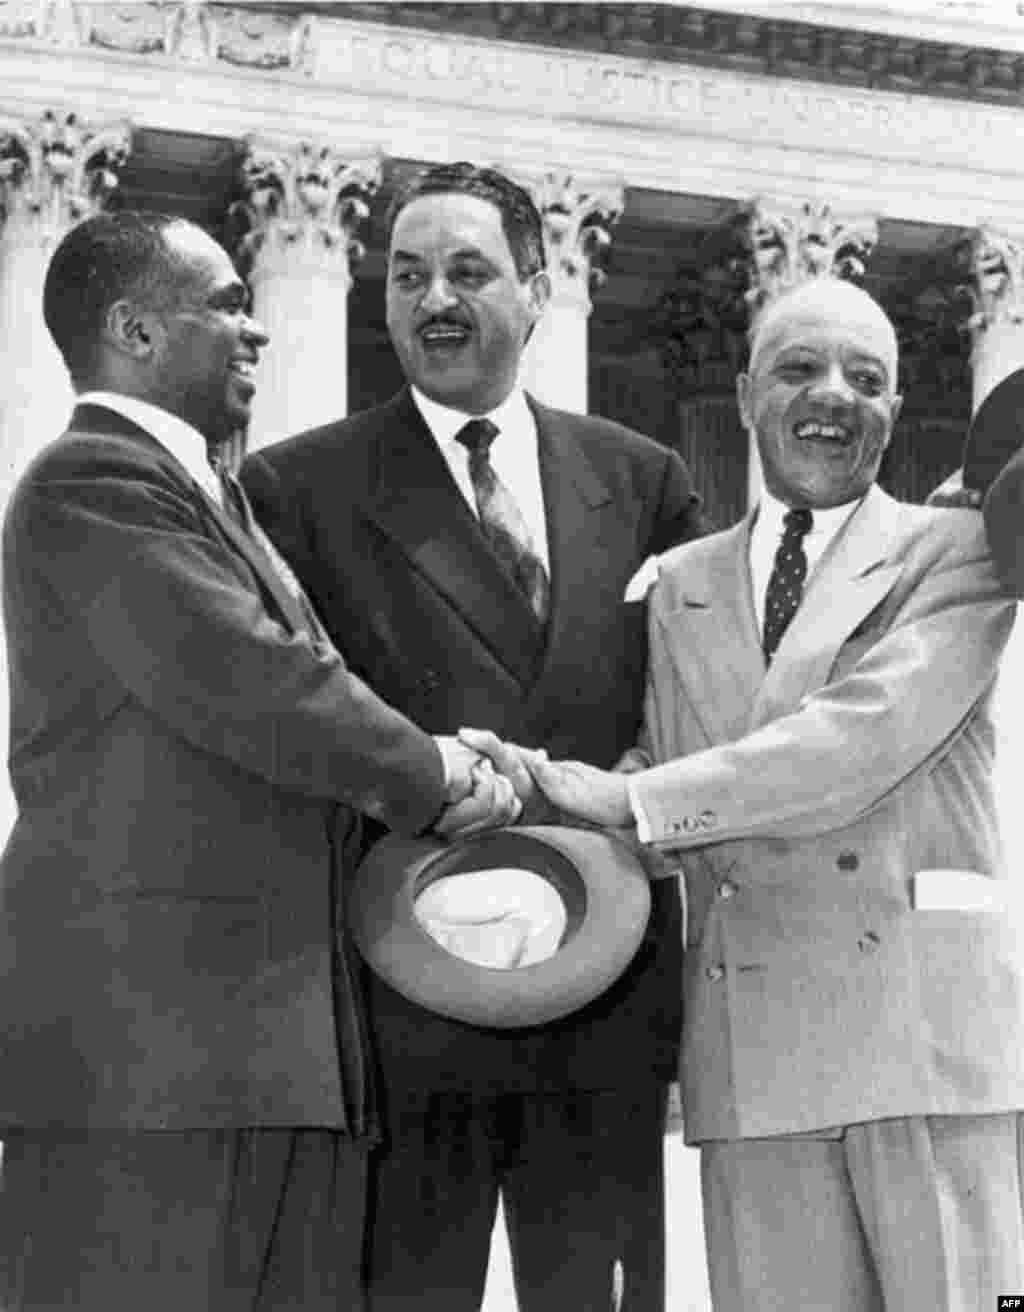 Lawyers Thurgood Marshall (center), George E.C. Hayes (left), and James Nabrit celebrate the Supreme Court's decision in Brown v. Board of Education on May 17, 1954. The ruling declared racial segregation in schools to be unconstitutional. In 1967, Thurgood Marshall became the first African-American to be appointed to the Supreme Court.